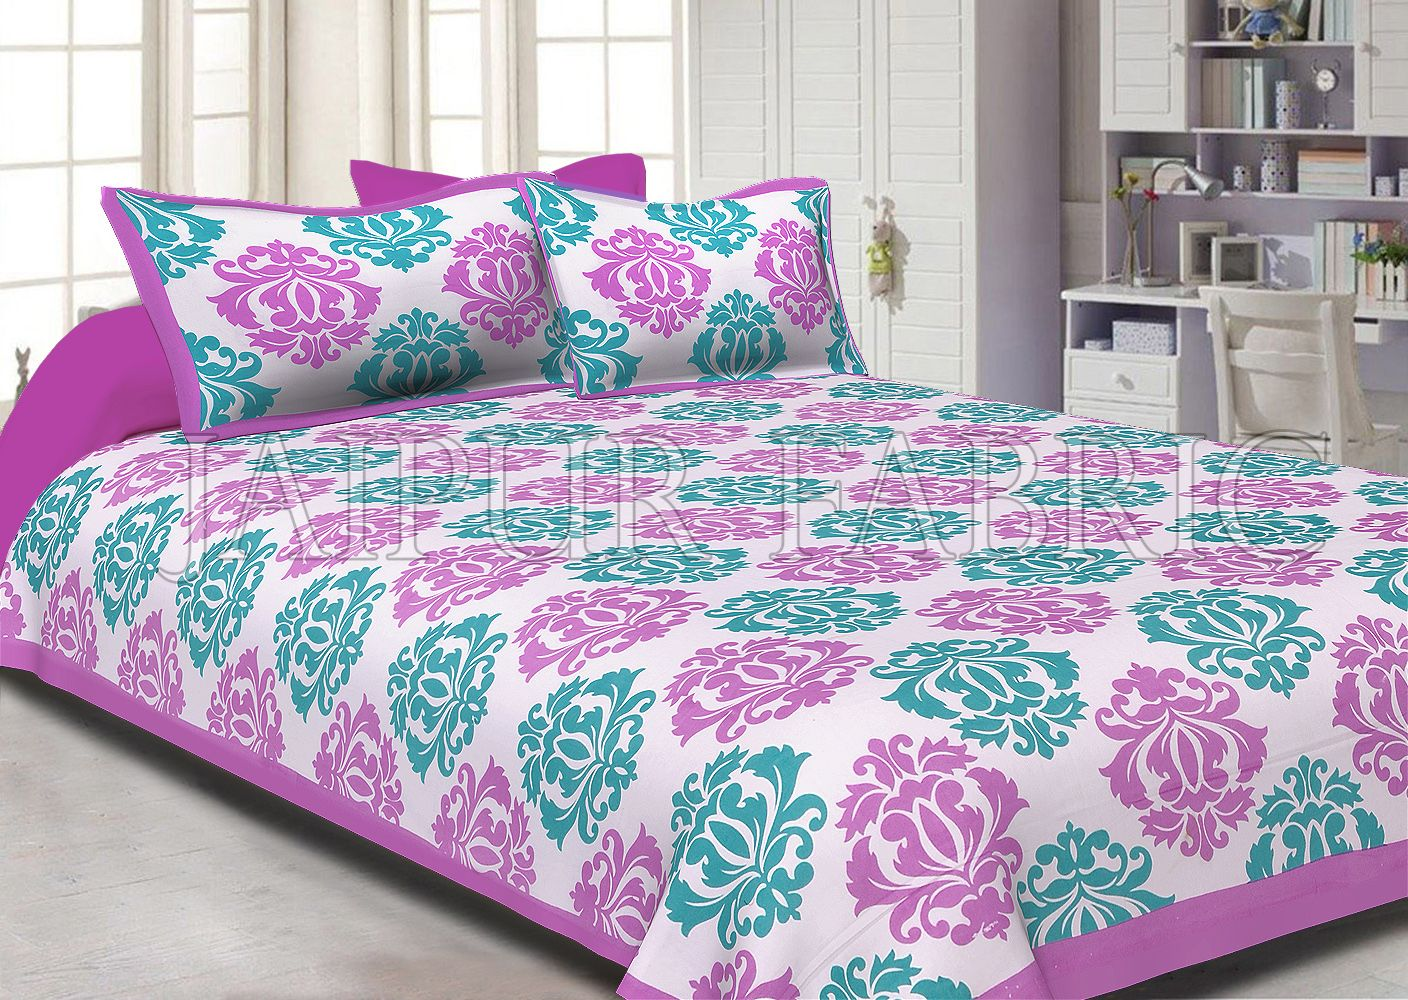 Violet boarder cream base with floral pattern double bed sheet